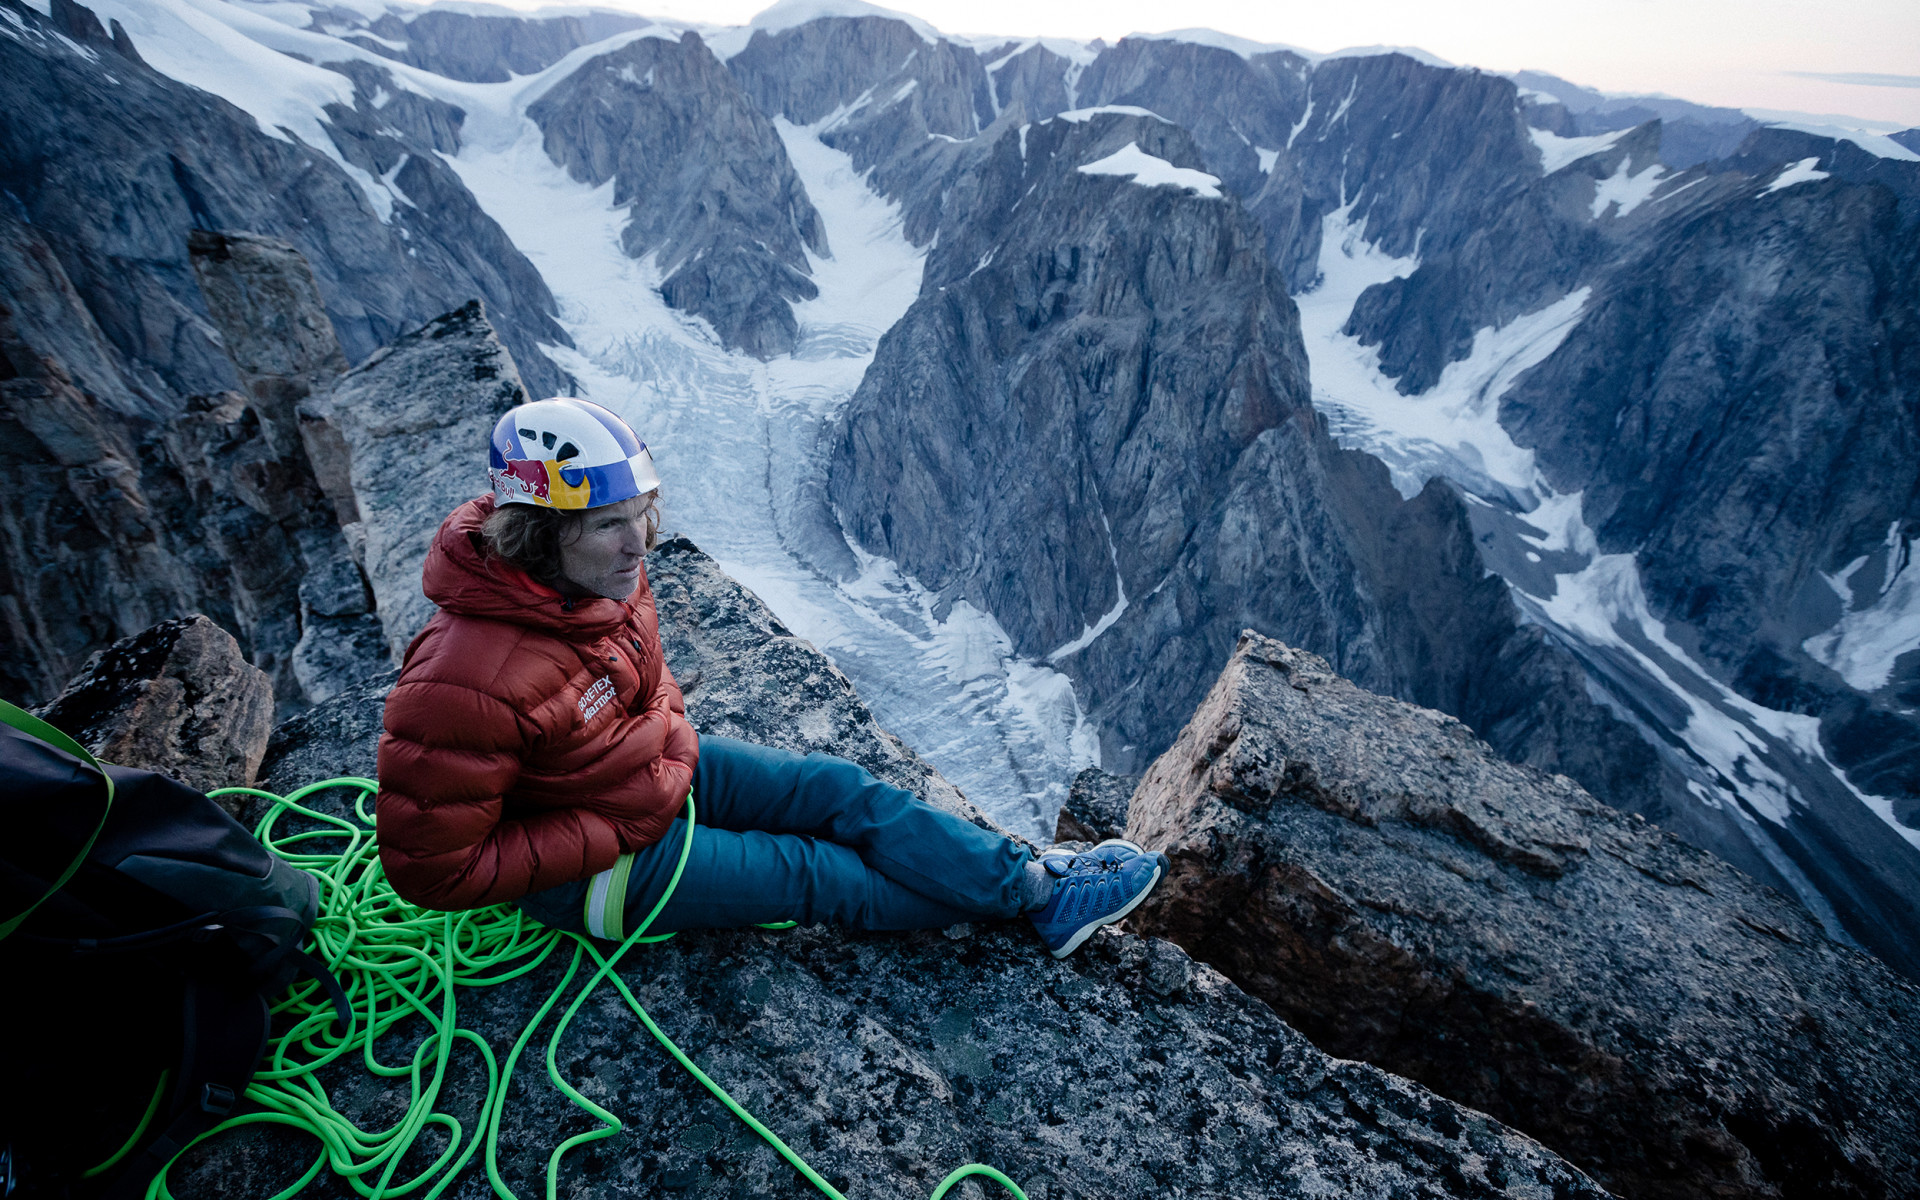 A big wall ascent in Greenland was missing.